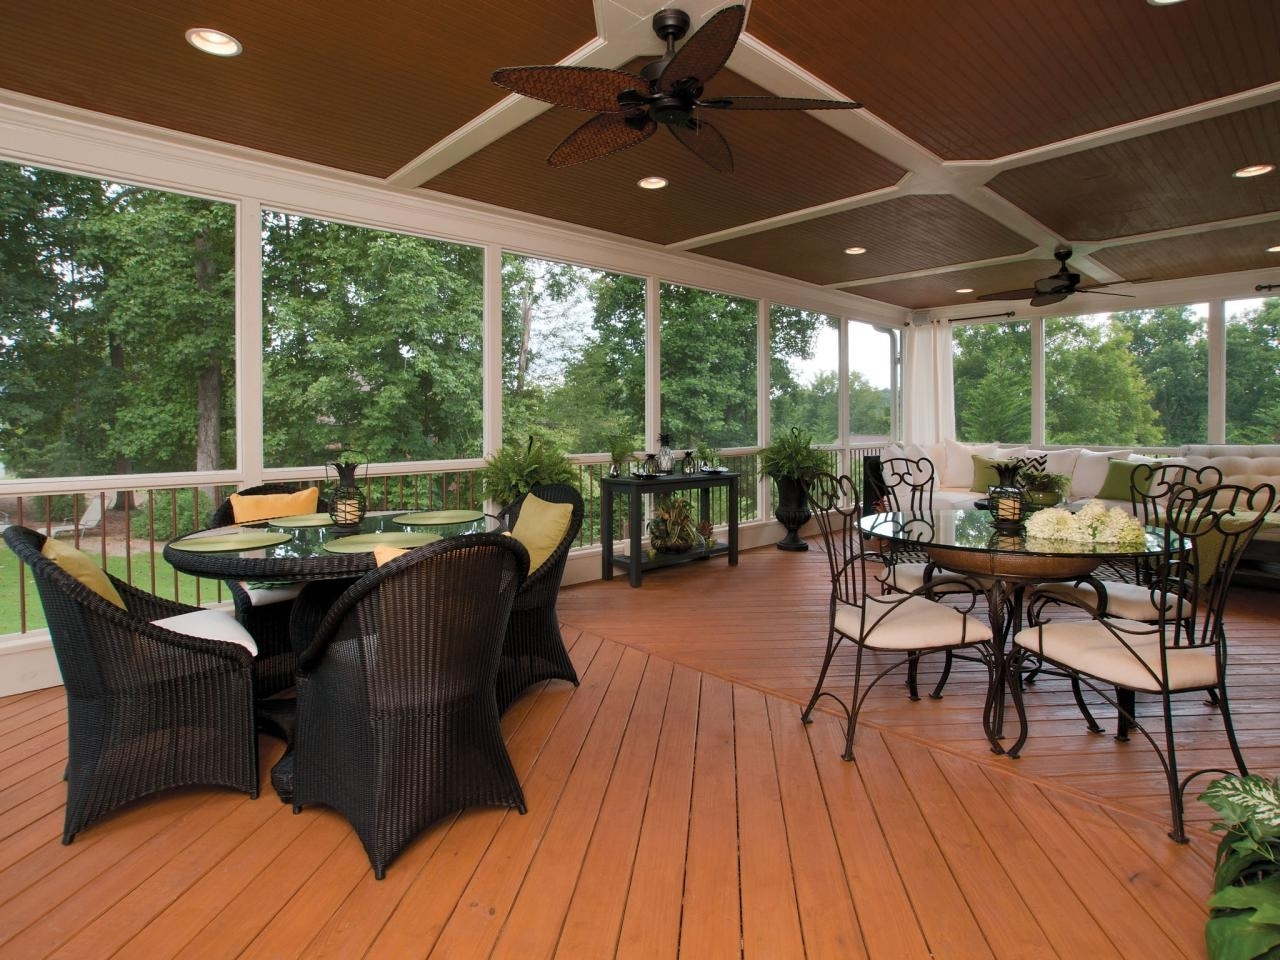 Famous Outdoor Porch Ceiling Fans With Lights With Regard To Front Porch Light With Camera Lights Music Ideas Outdoor Not Working (View 3 of 20)